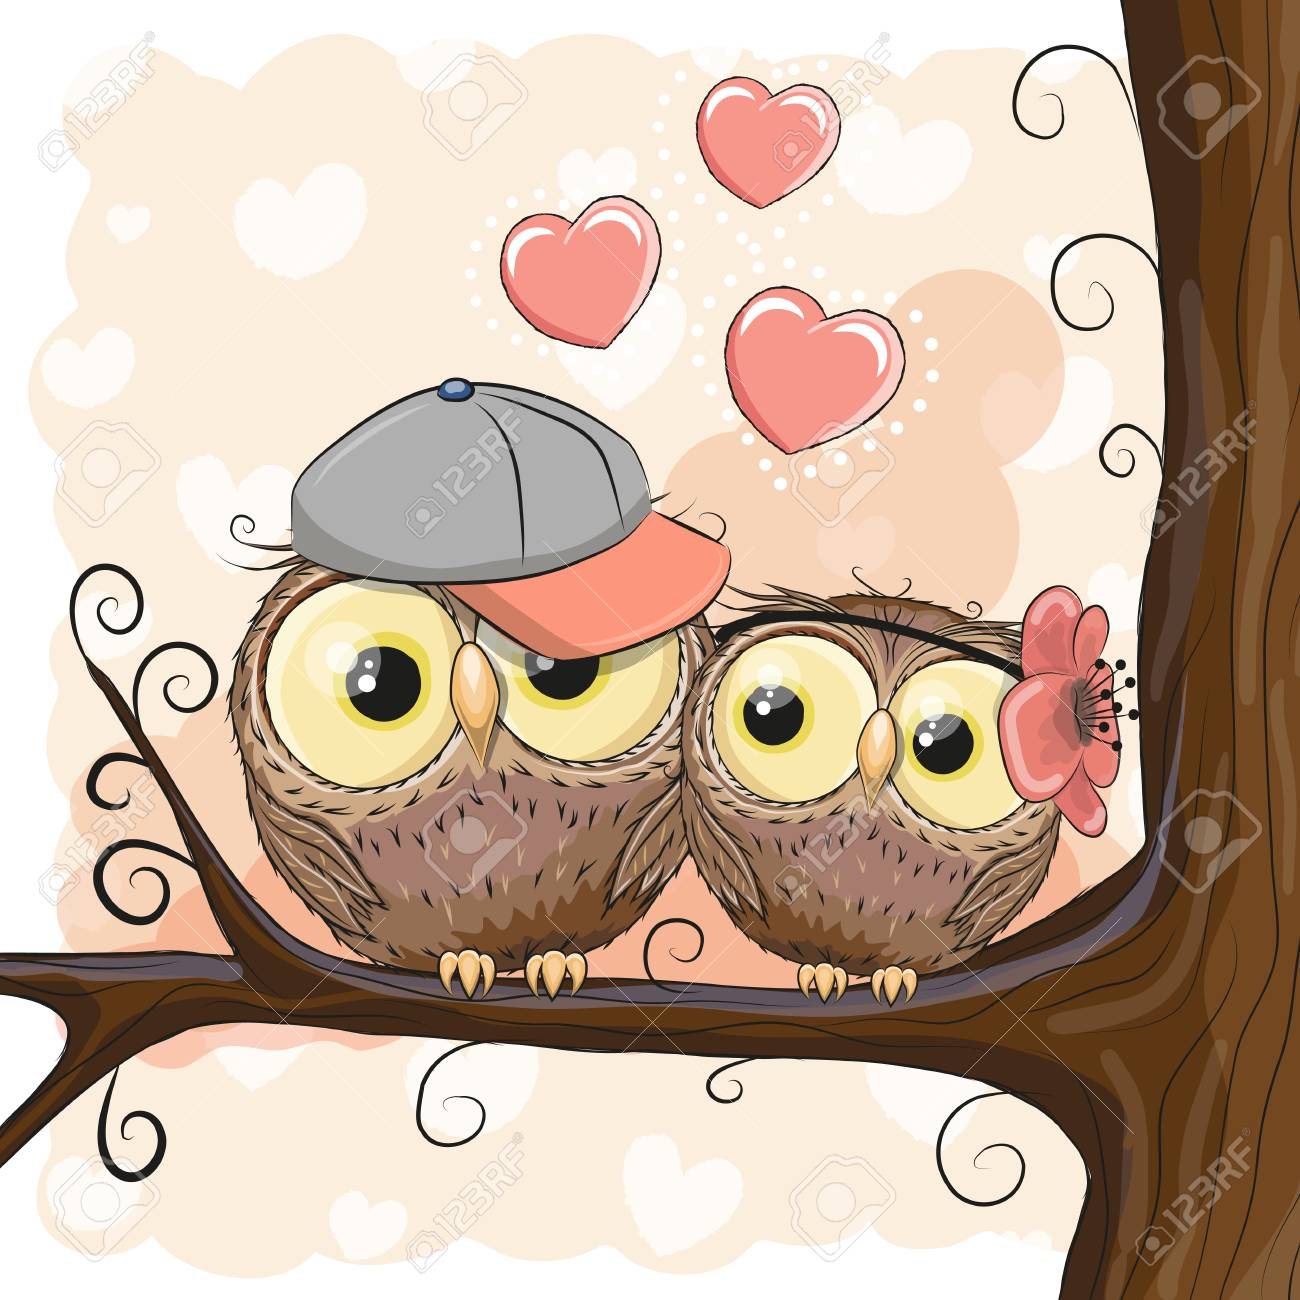 Two Cute Owls Is Sitting On A Branch Royalty Free Cliparts Vectors And Stock Illustration Image 85641161